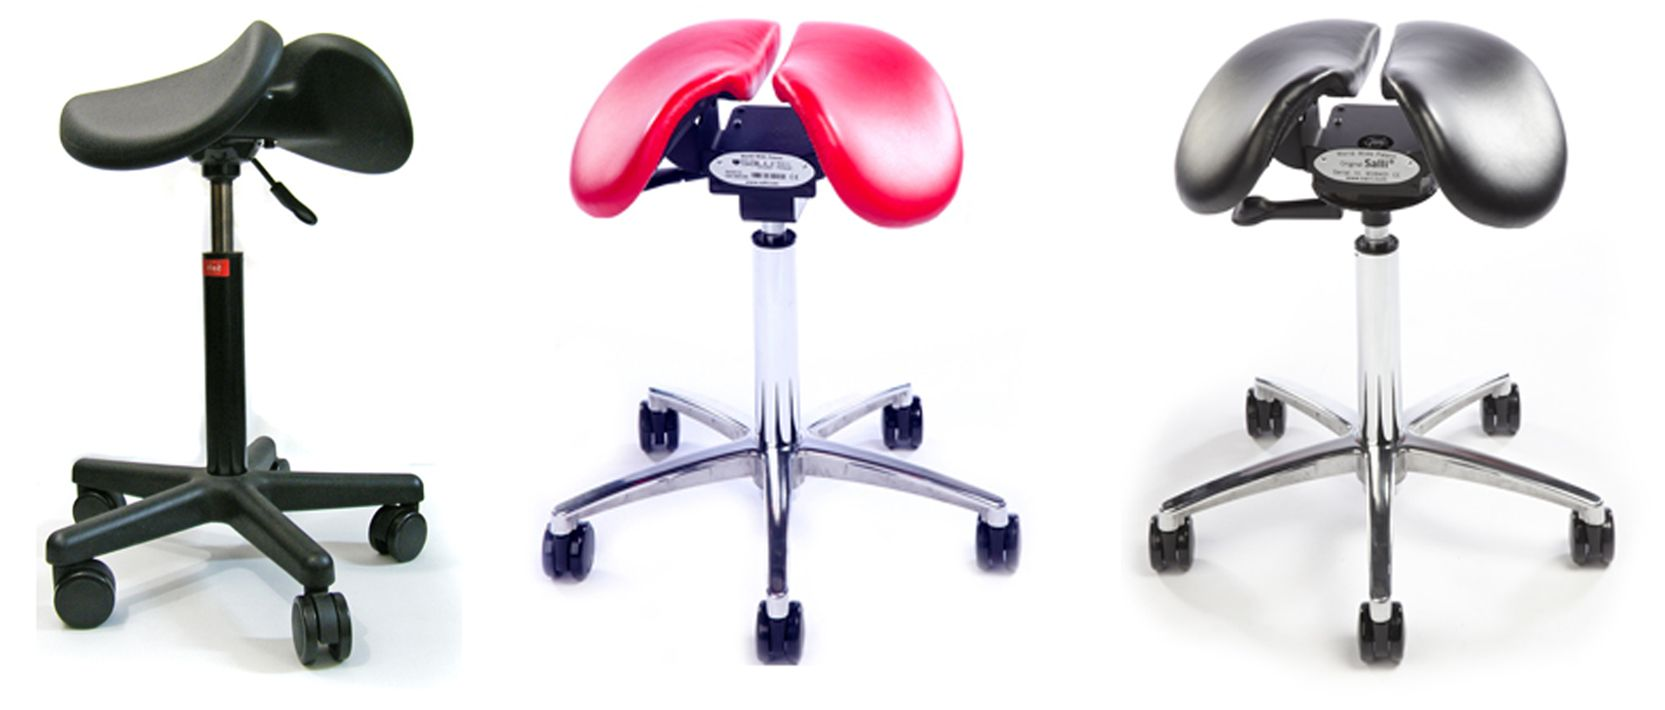 Buy high quality dental chairs in the Philippines